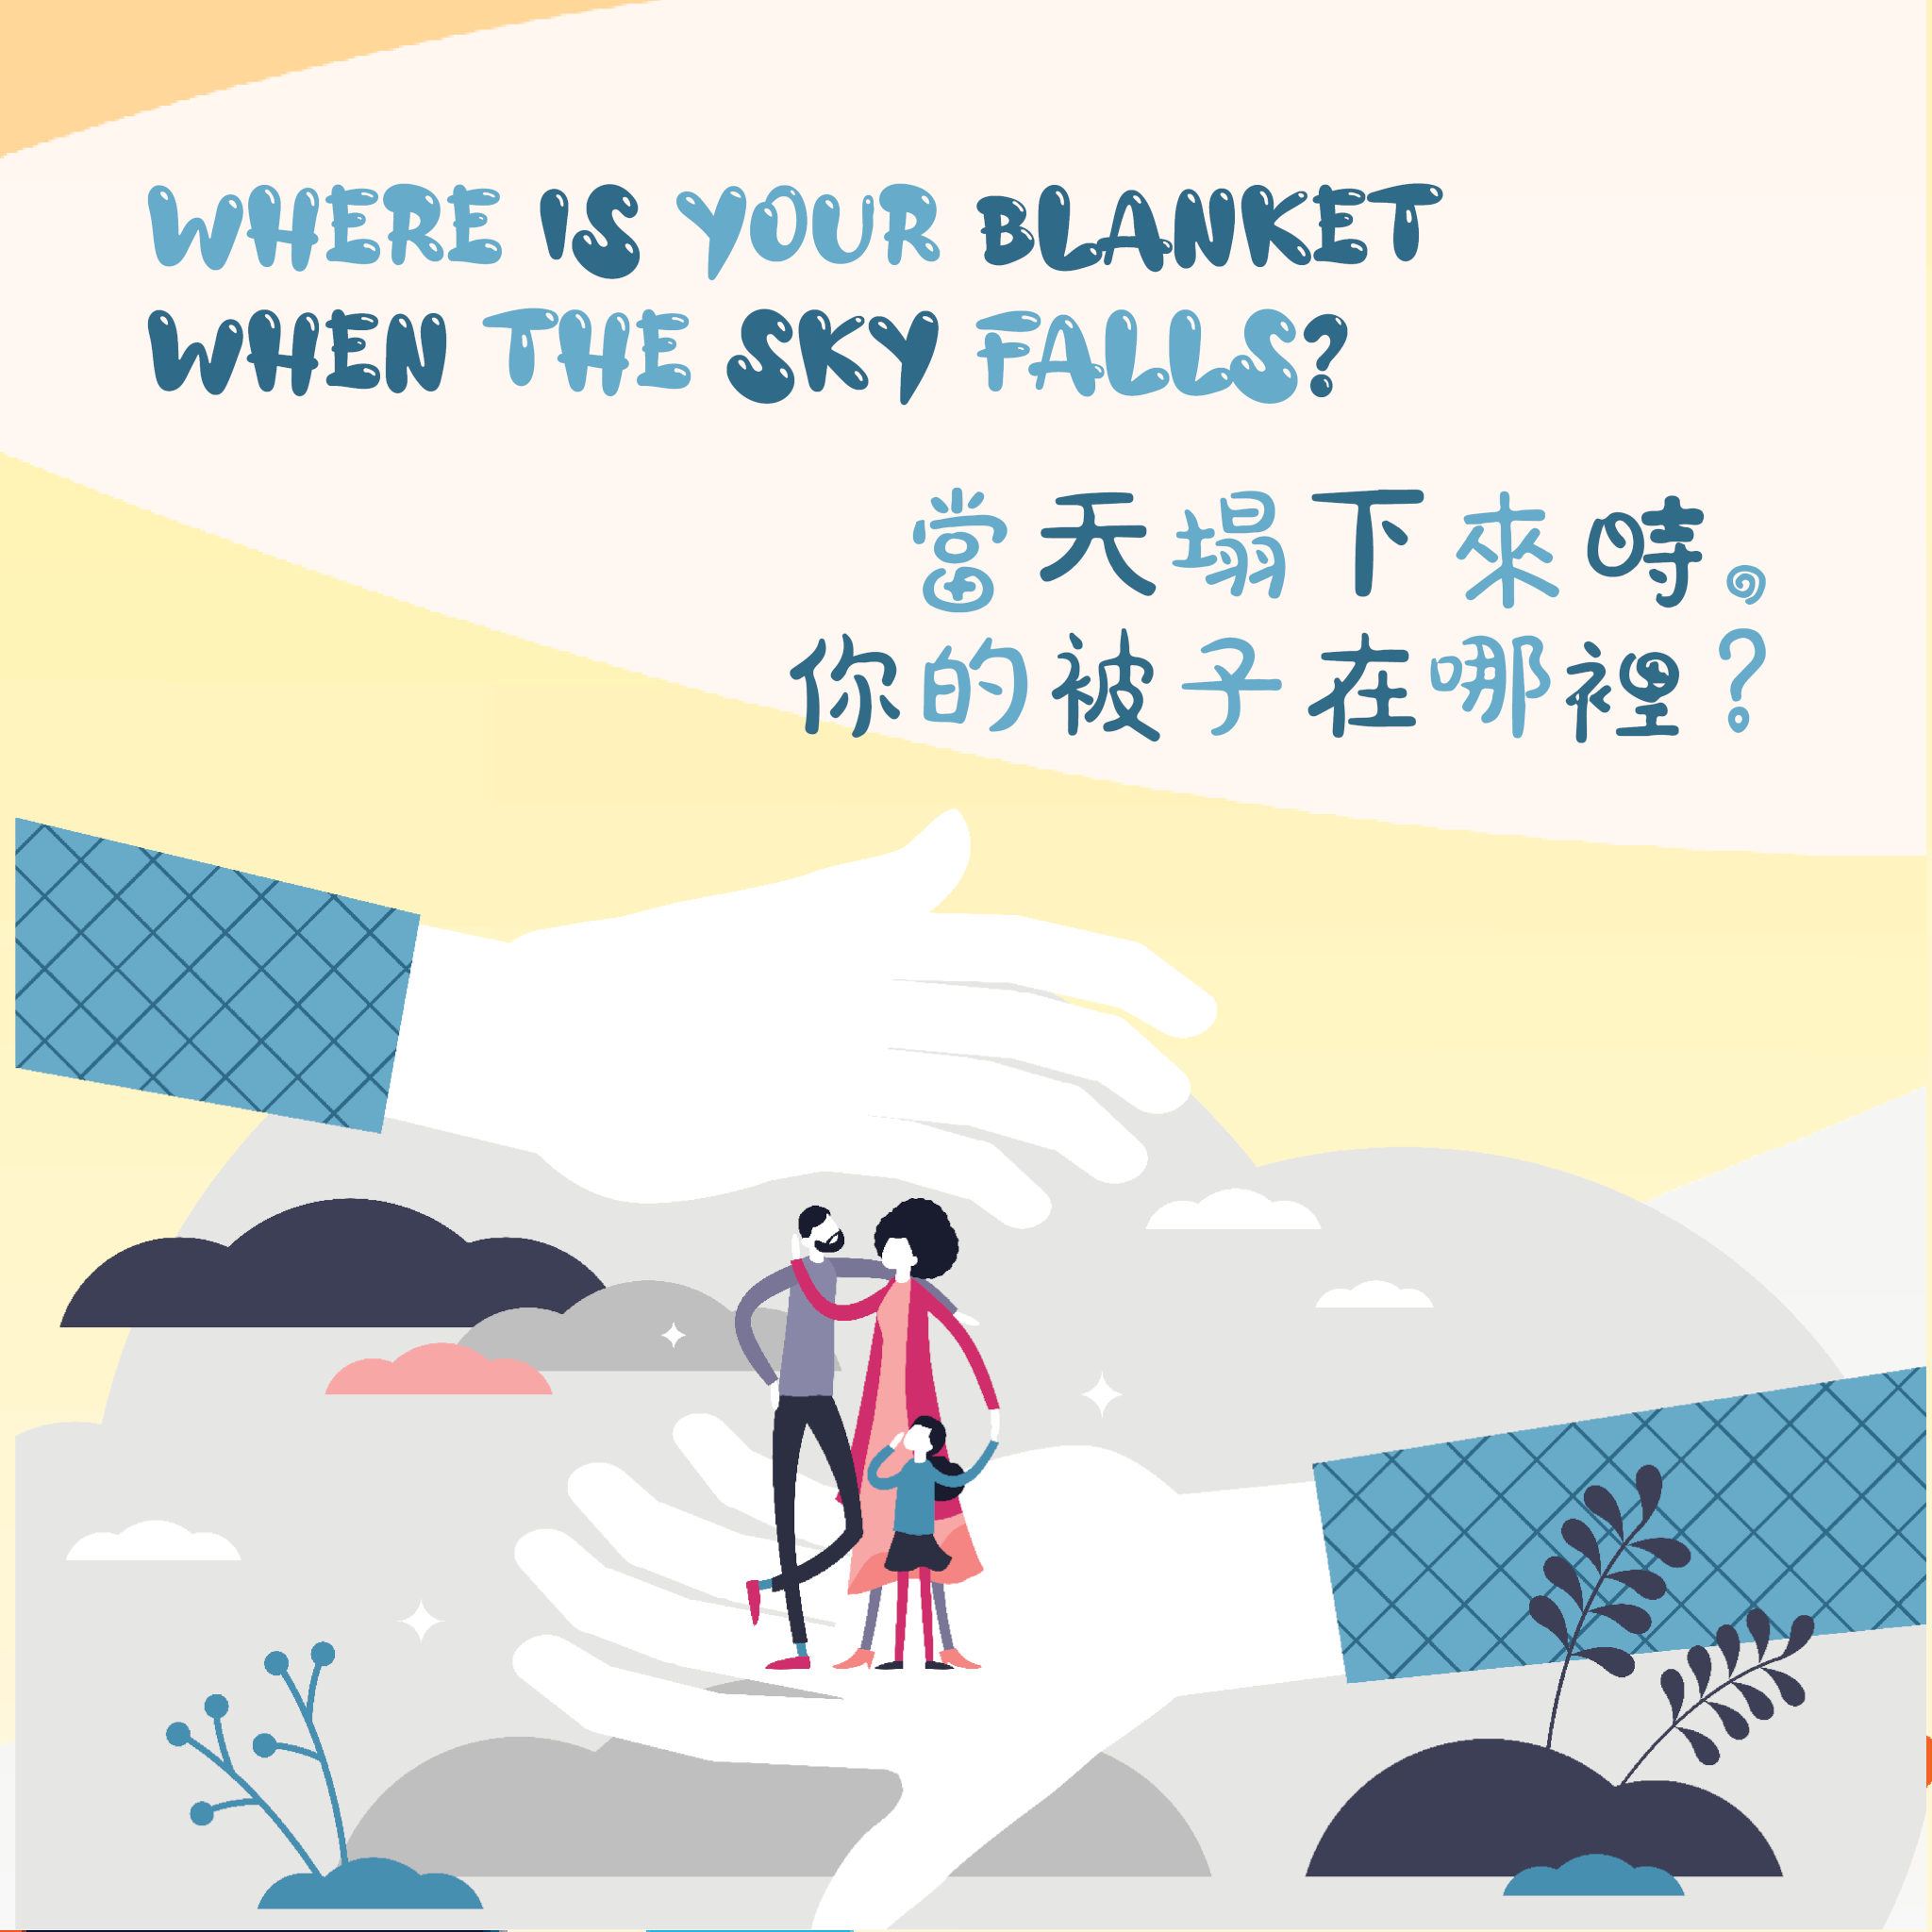 Where is your blanket when the sky falls?